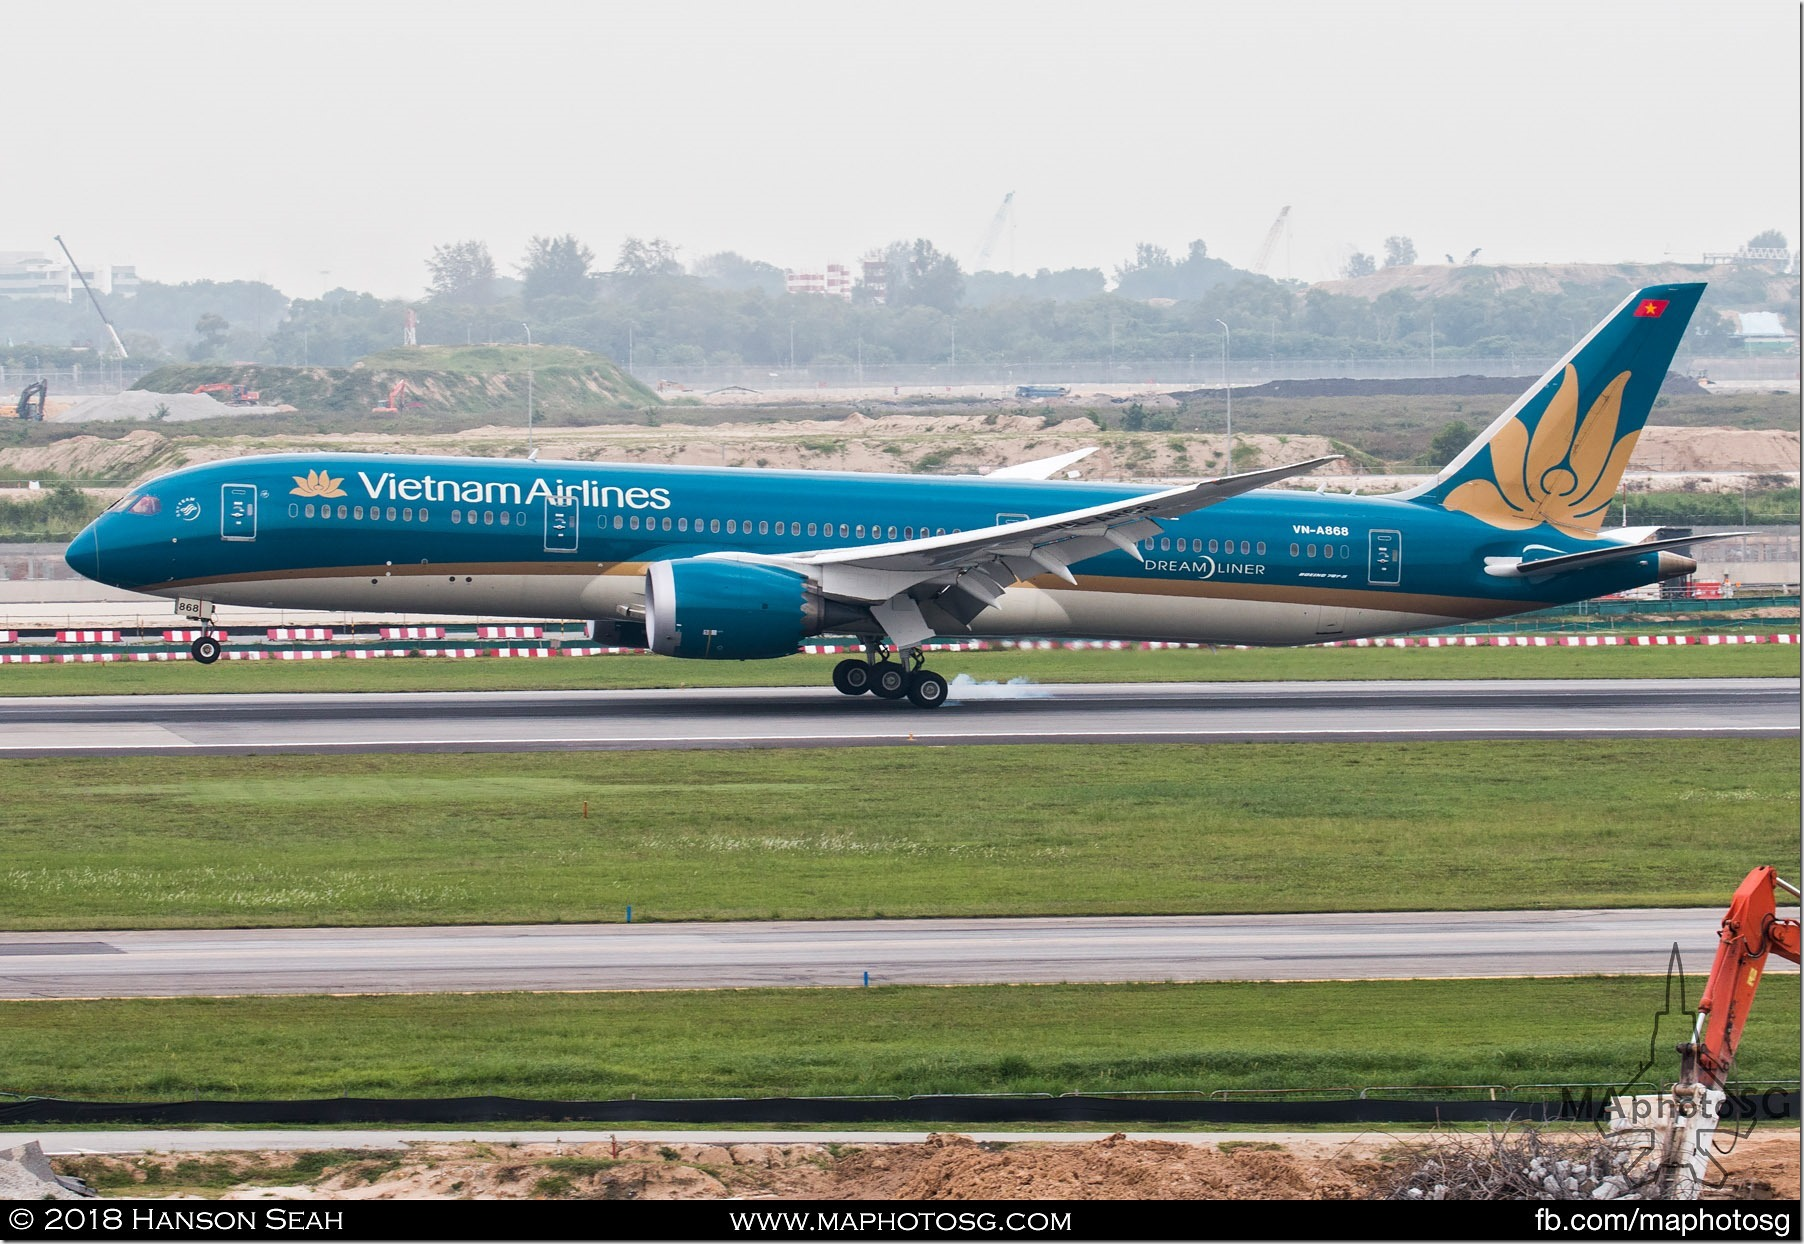 10. Vietnam Airlines Boeing 787 Dreamliner coming in with Prime Minister Nguyen Xuan Phuc